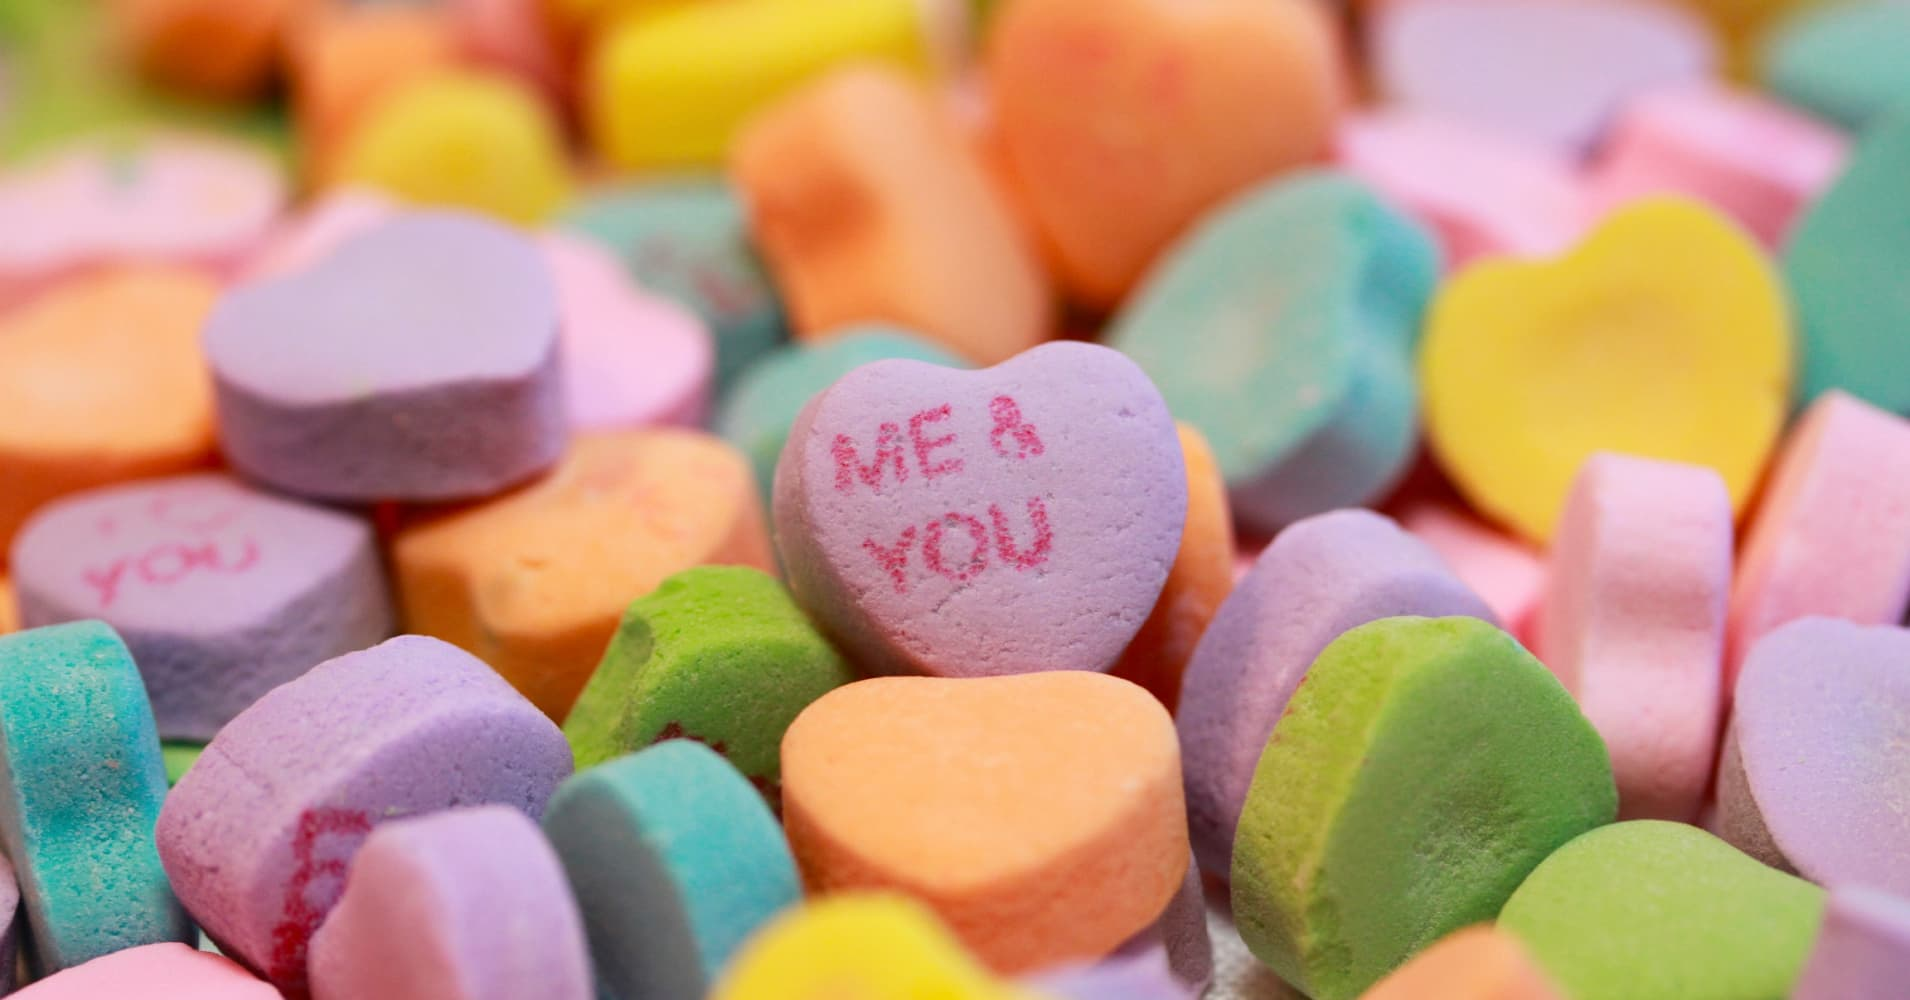 America's favorite Valentine's Day candy is missing — here are some other options